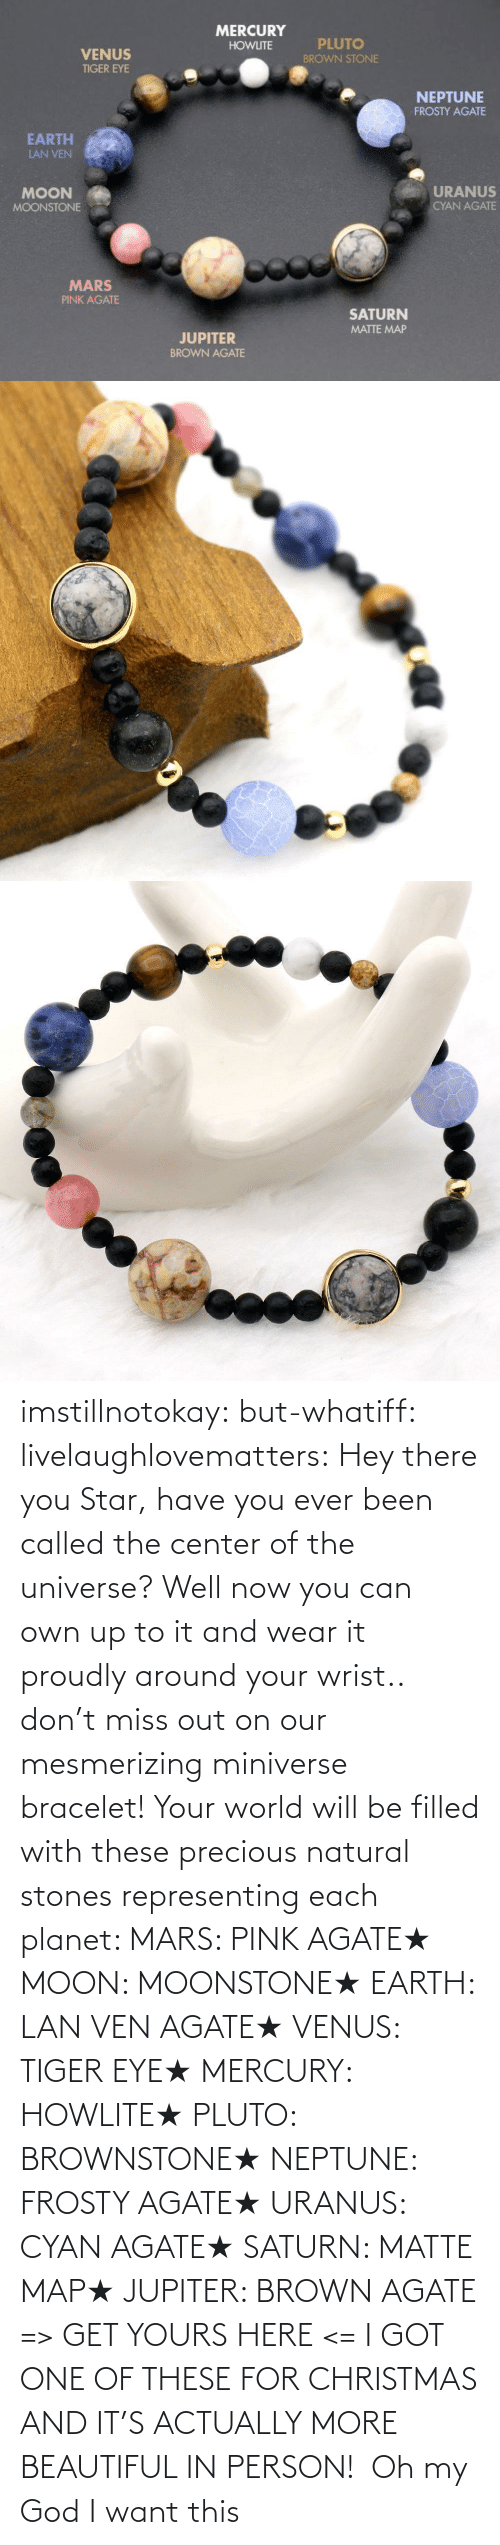 more: imstillnotokay:  but-whatiff: livelaughlovematters:  Hey there you Star, have you ever been called the center of the universe? Well now you can own up to it and wear it proudly around your wrist.. don't miss out on our mesmerizing miniverse bracelet! Your world will be filled with these precious natural stones representing each planet:  MARS: PINK AGATE★ MOON: MOONSTONE★ EARTH: LAN VEN AGATE★ VENUS: TIGER EYE★ MERCURY: HOWLITE★ PLUTO: BROWNSTONE★ NEPTUNE: FROSTY AGATE★ URANUS: CYAN AGATE★ SATURN: MATTE MAP★ JUPITER: BROWN AGATE => GET YOURS HERE <=  I GOT ONE OF THESE FOR CHRISTMAS AND IT'S ACTUALLY MORE BEAUTIFUL IN PERSON!     Oh my God I want this